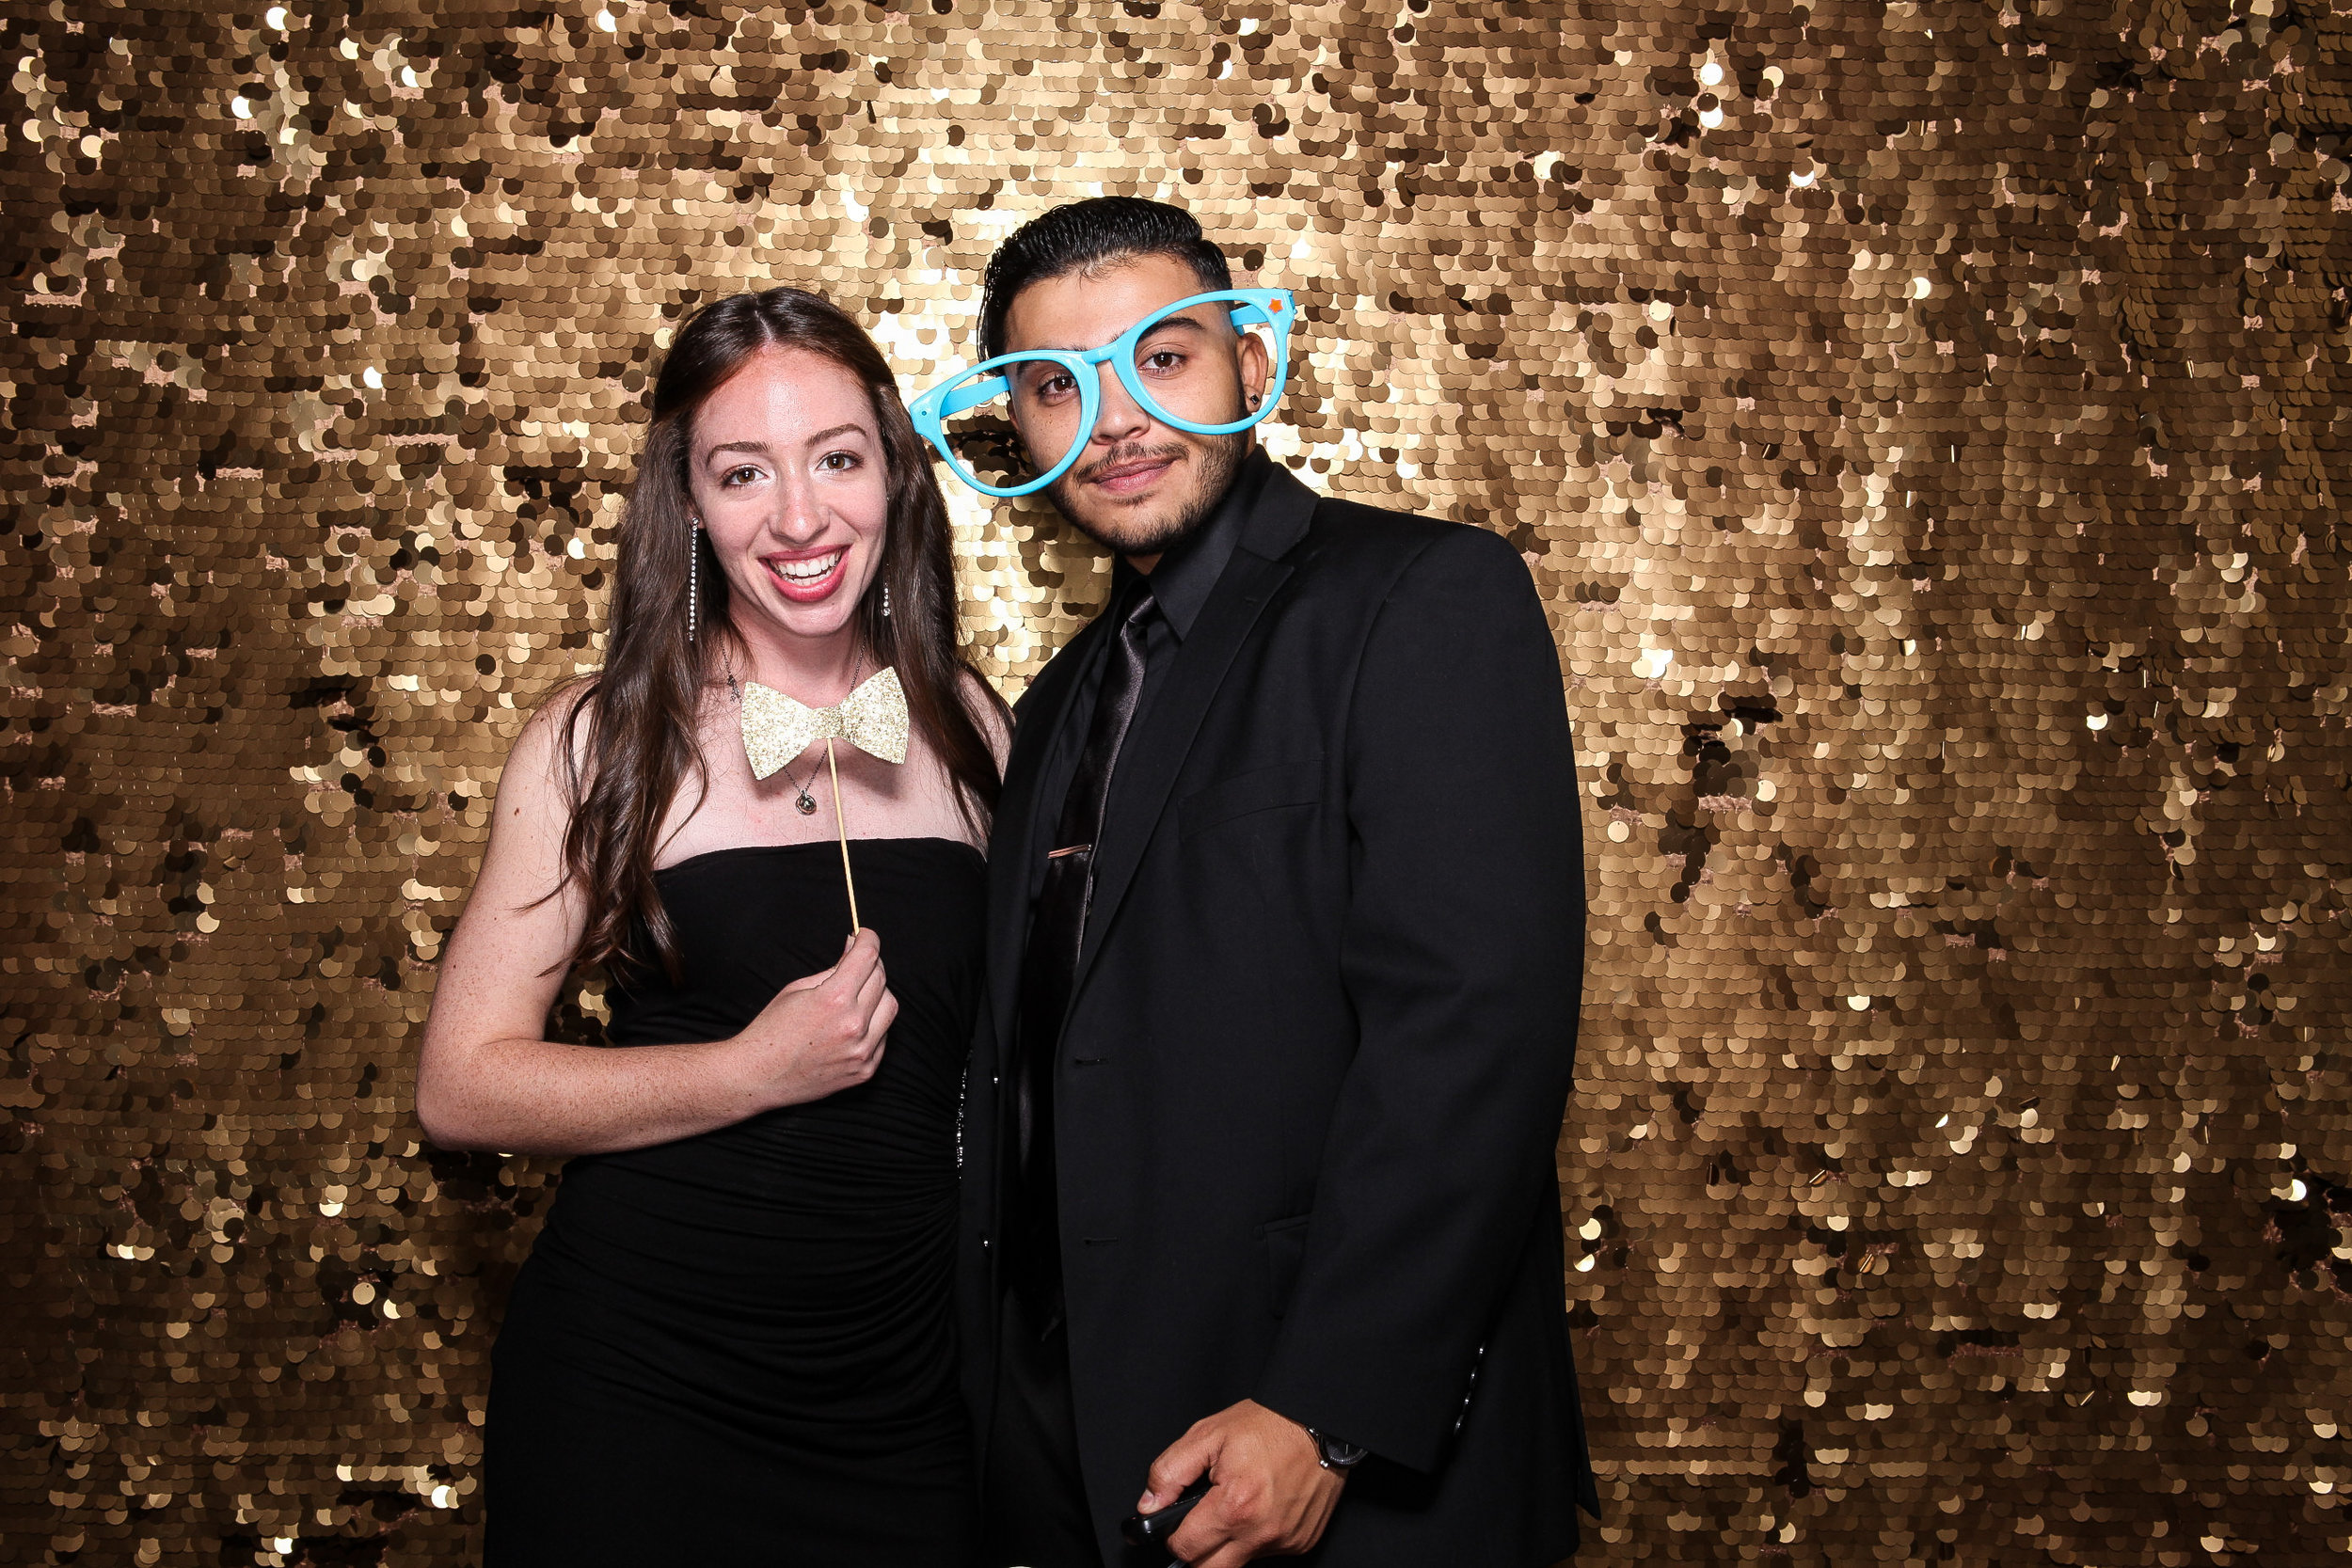 20190503_Adelphi_Senior_Formal-248.jpg